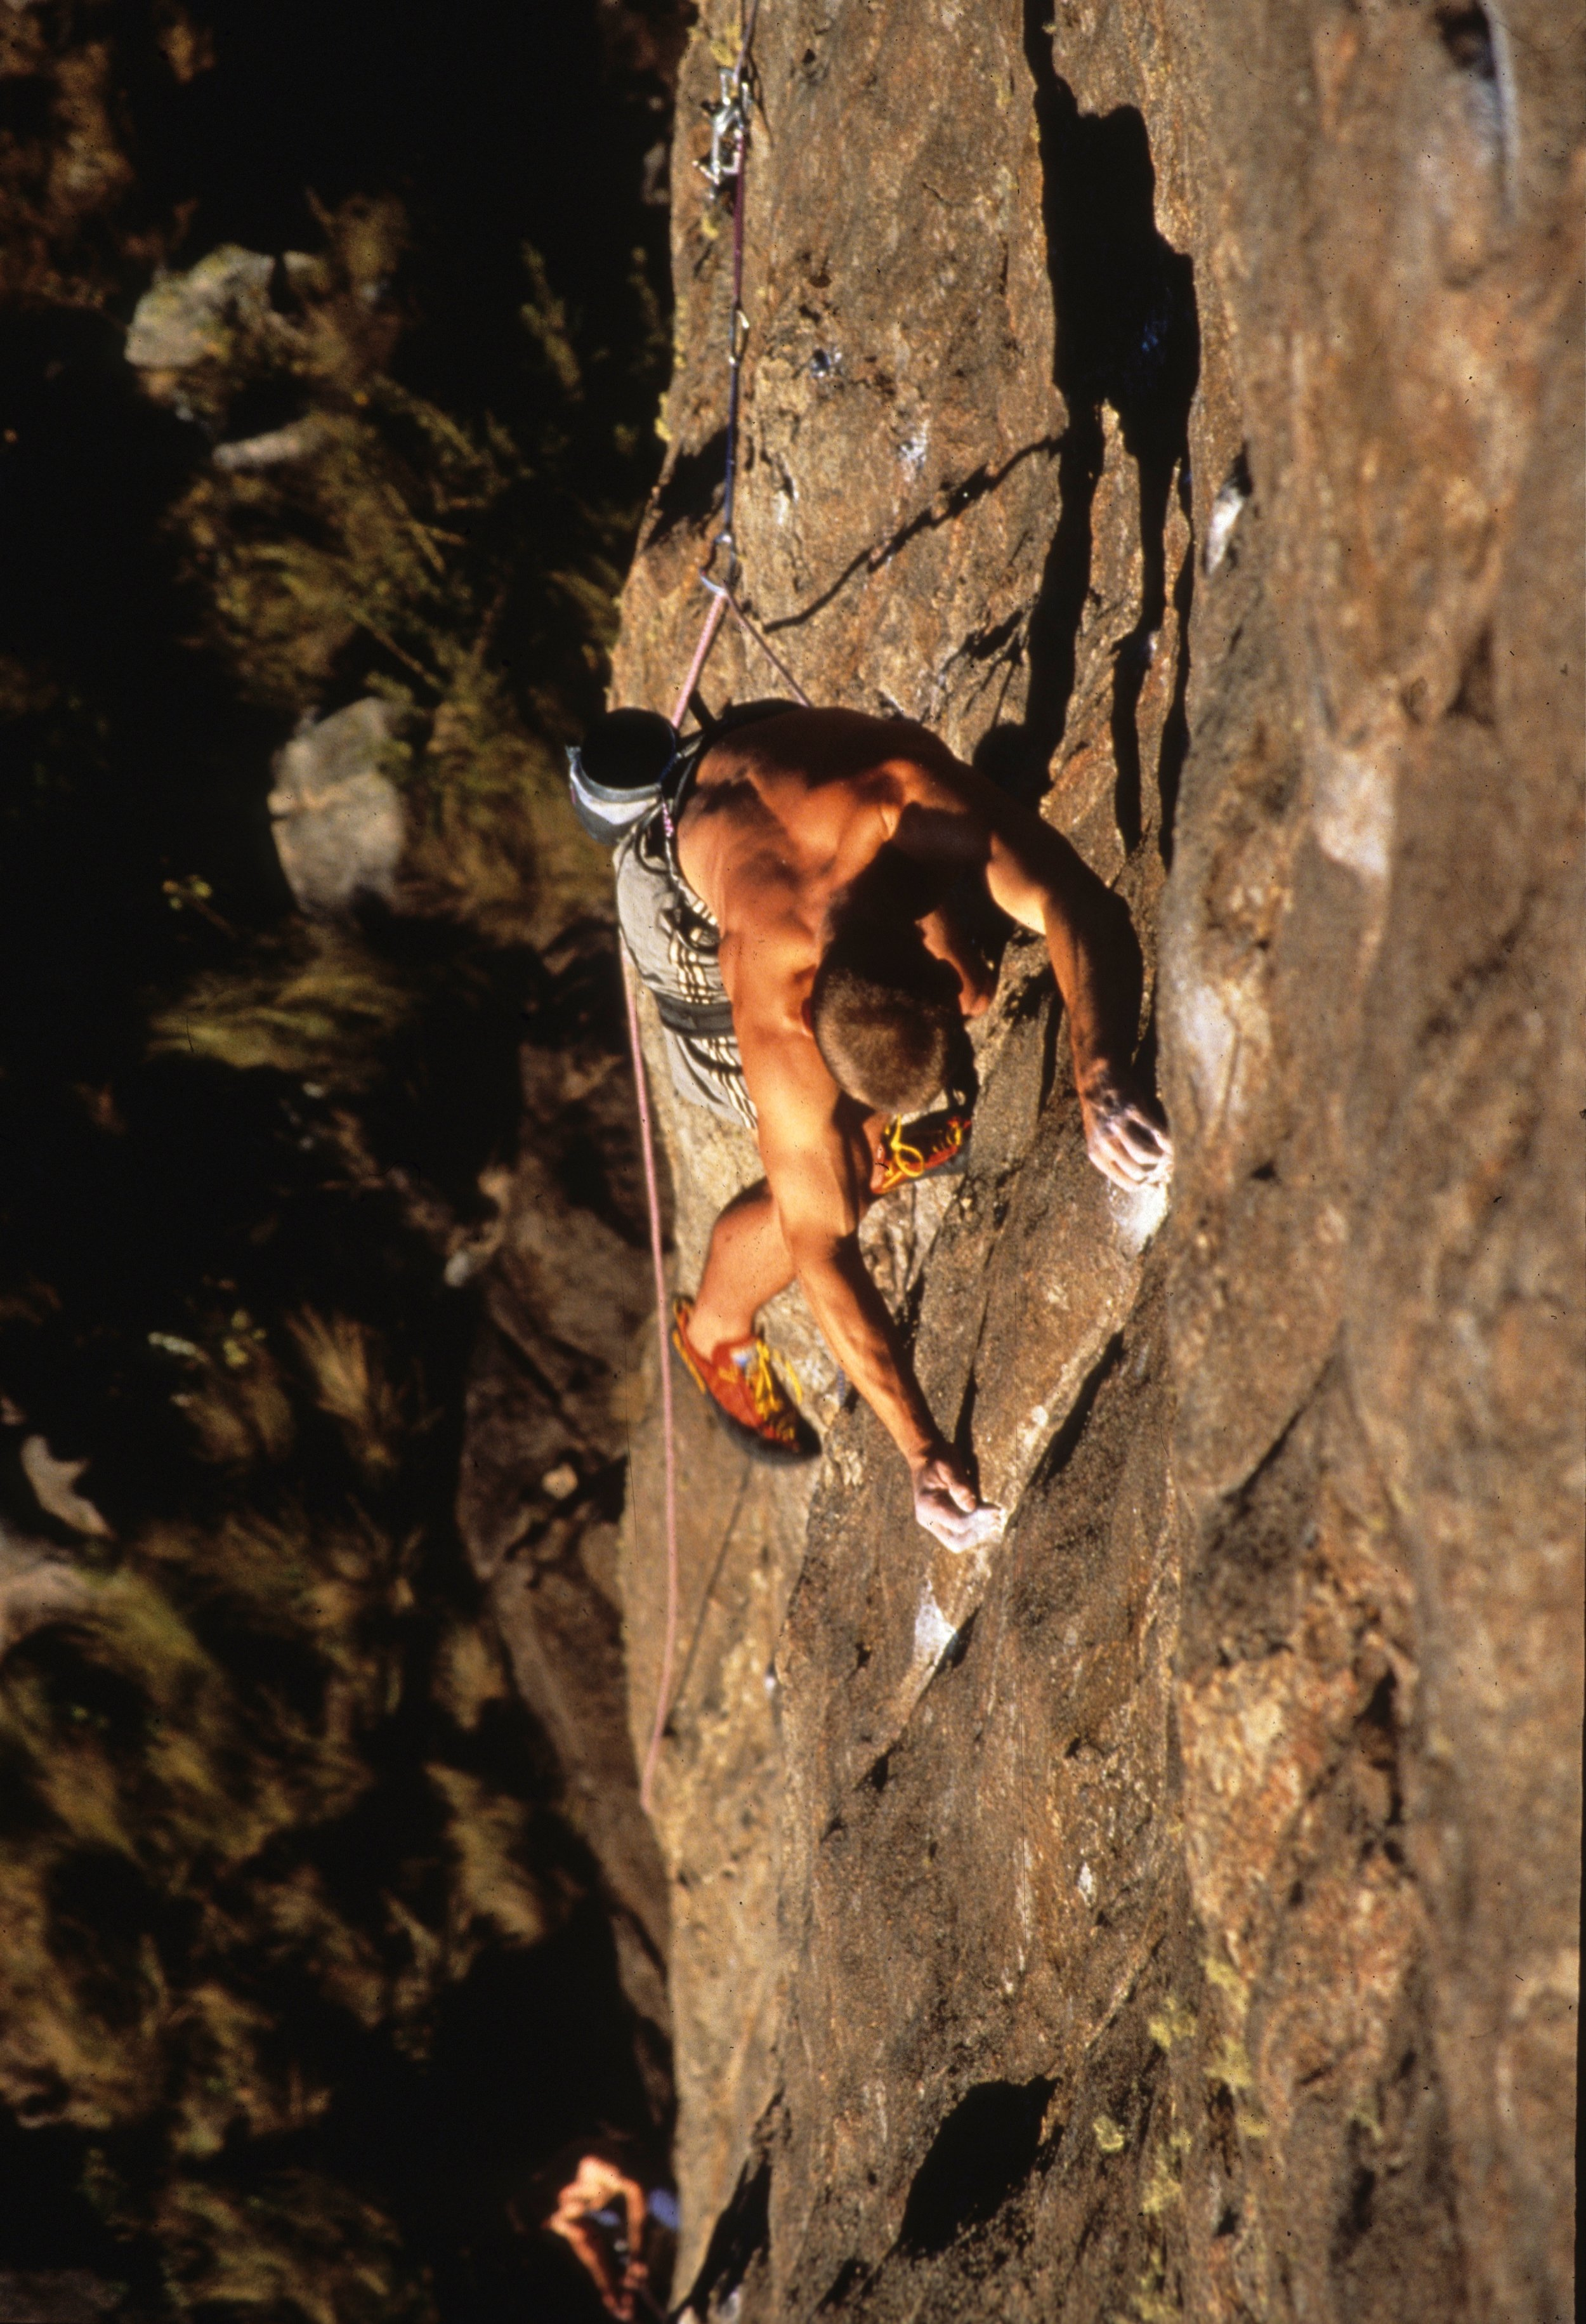 Boiling Point E8 6b, Itachaia. First ascent in 2000.  Photo: Mike Robertson